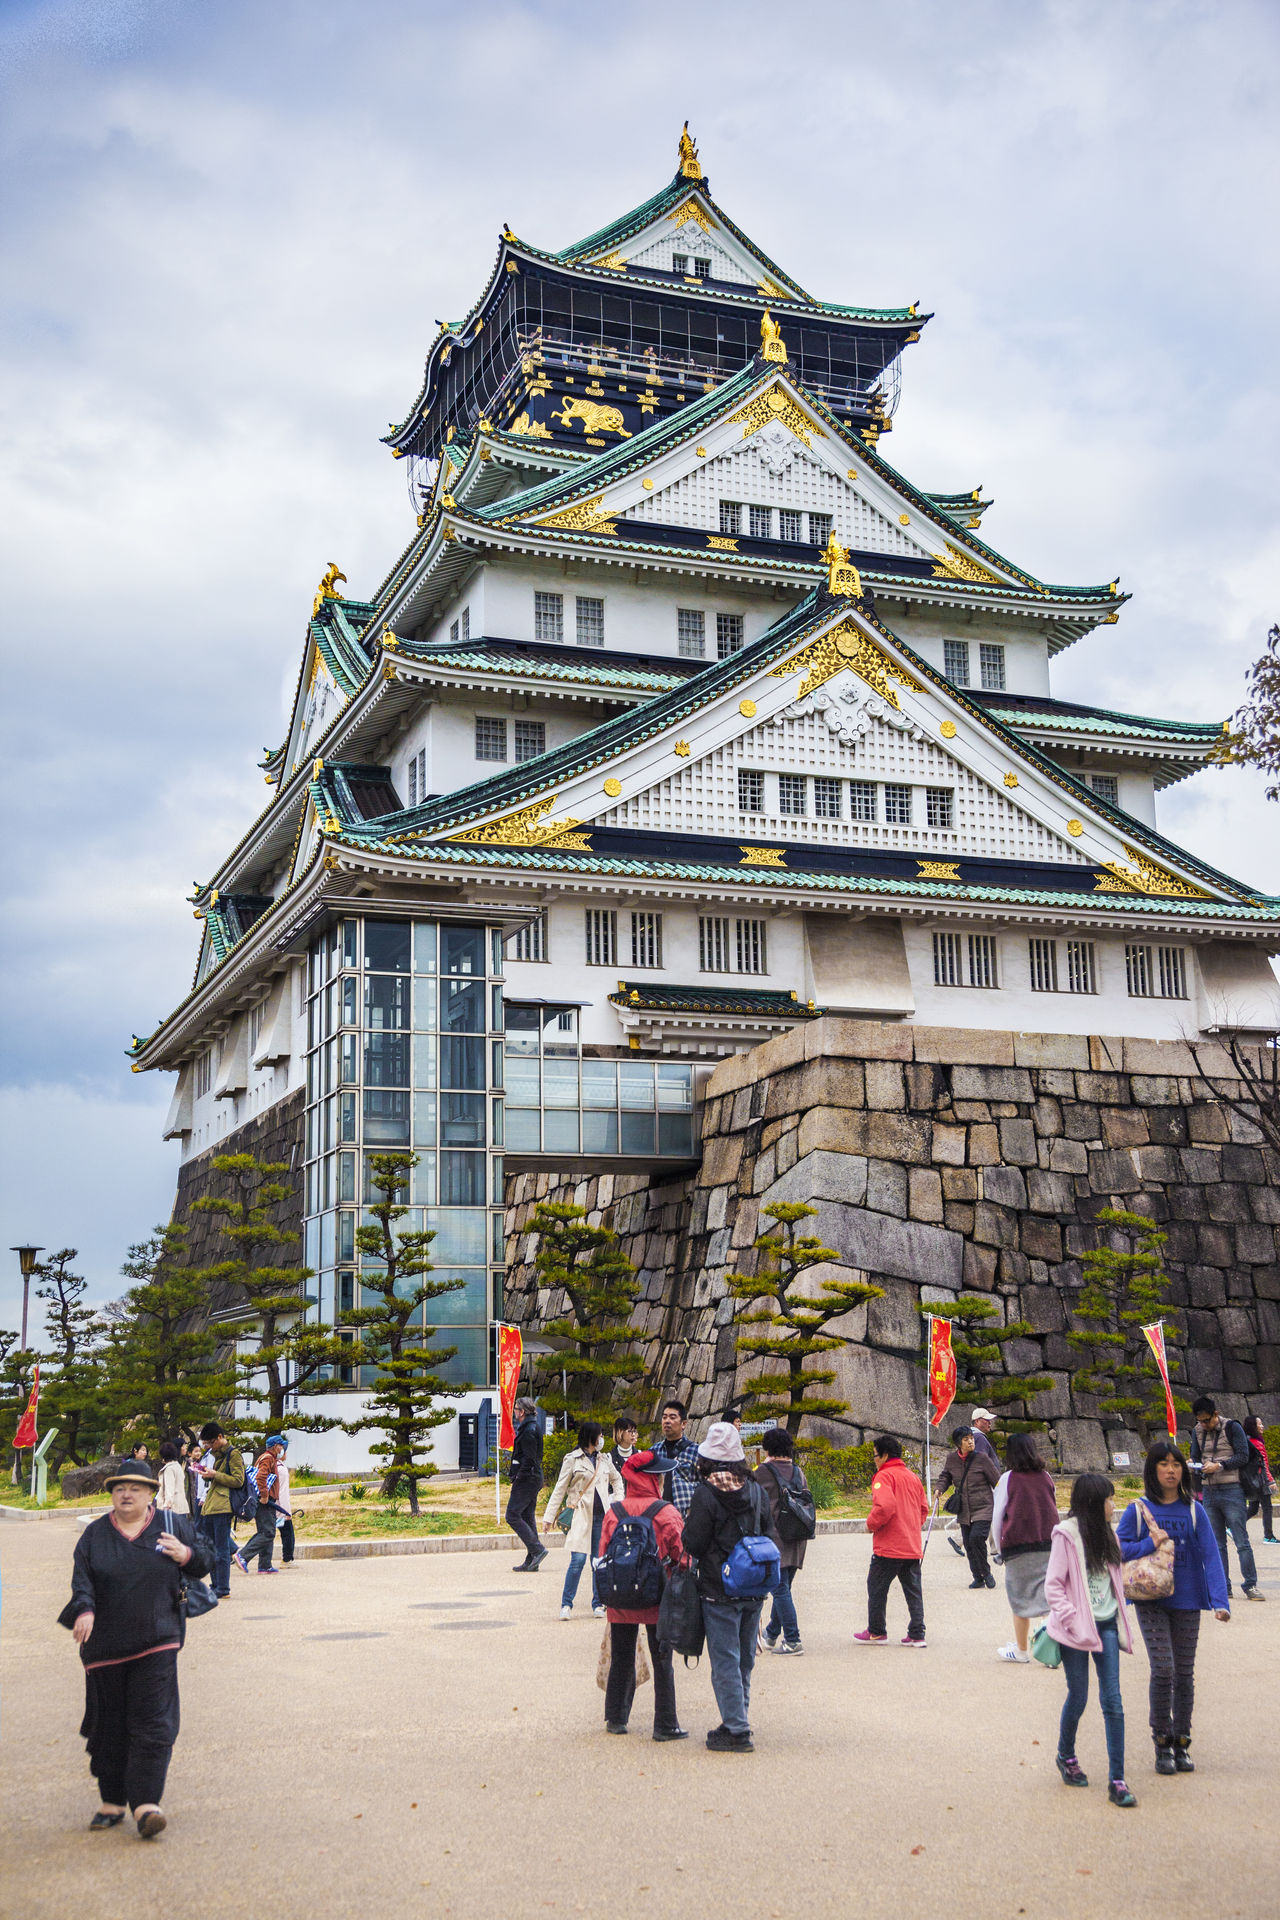 Ultimate Japan Japan OSAKA Osaka Castle Relic Vertical Composition Architecture Castle Tower City Life Cloud Cloud - Sky Cloudy Day Famous Place Famous Tourist Attractions History Leisure Activity Lifestyles Outdoors Sky Tourism Tourist Travel Destinations